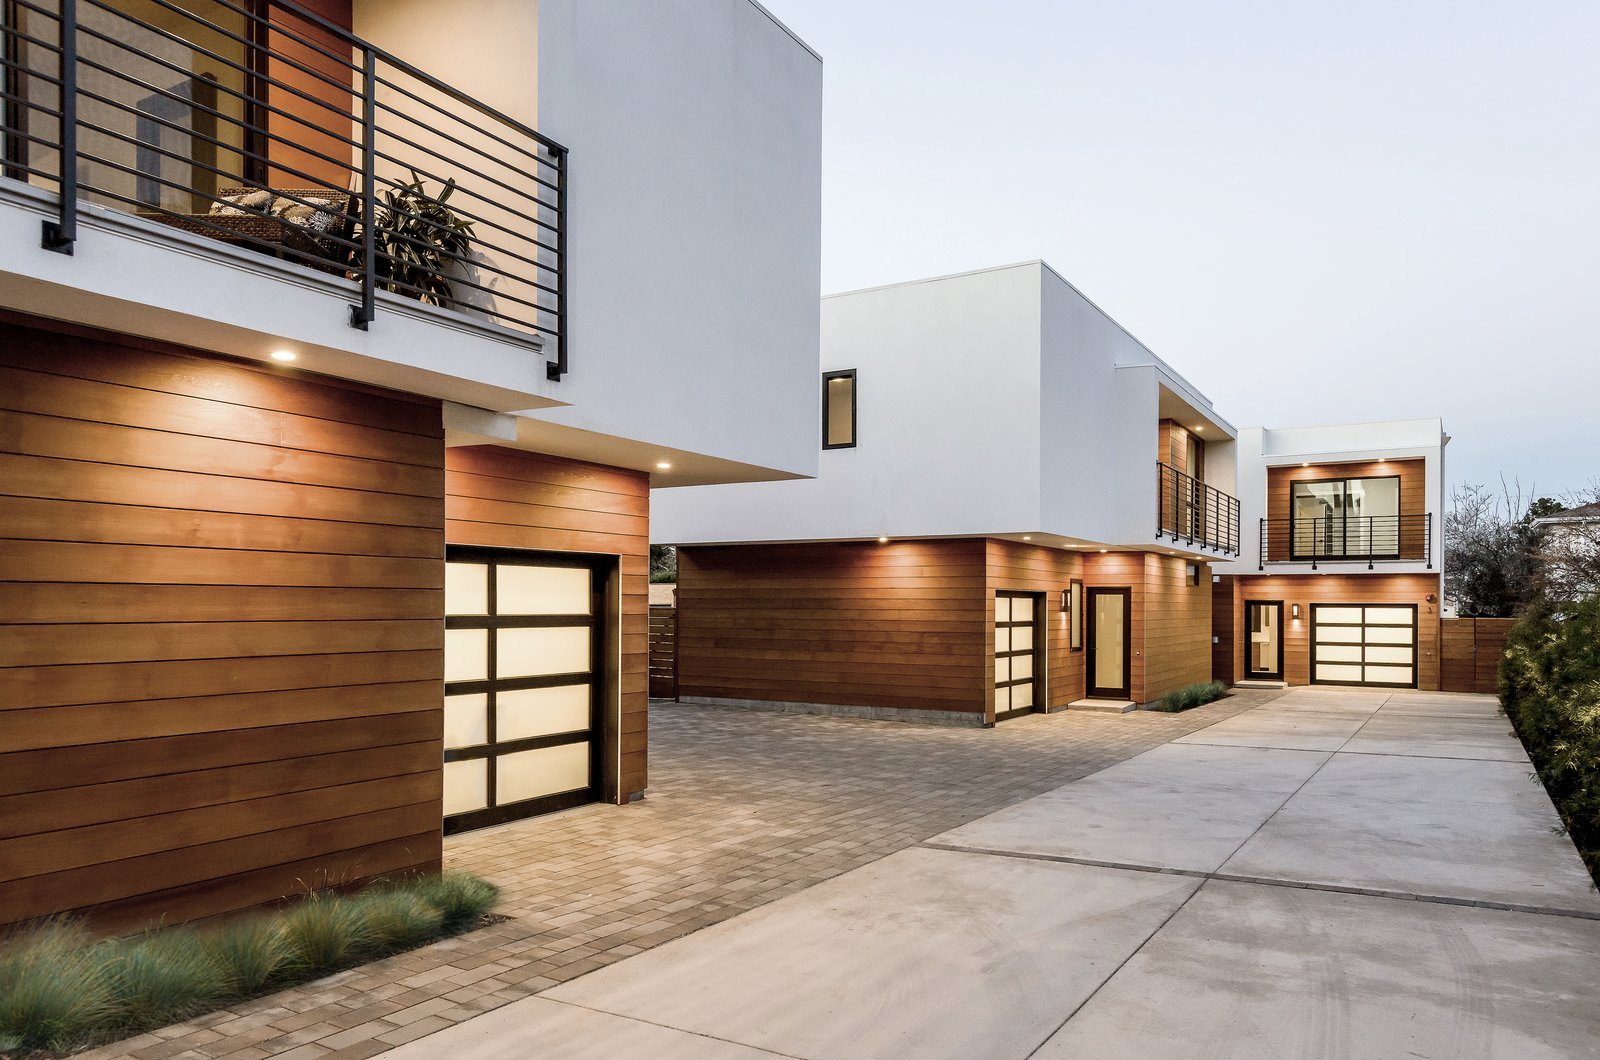 Tagged: Outdoor.  El Camino Real Triplex by Todd Davis Architecture